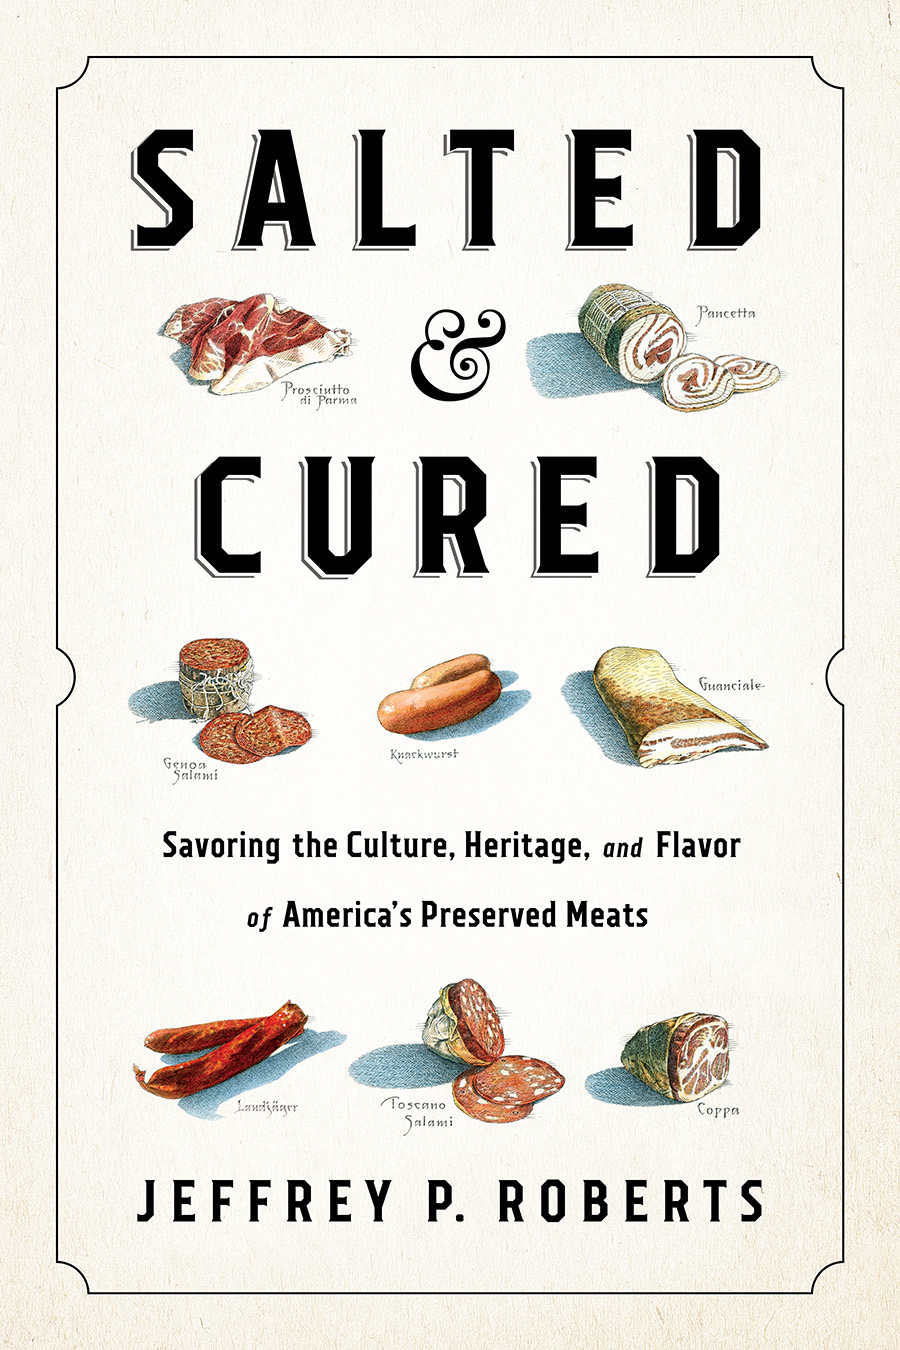 The Salted and Cured cover